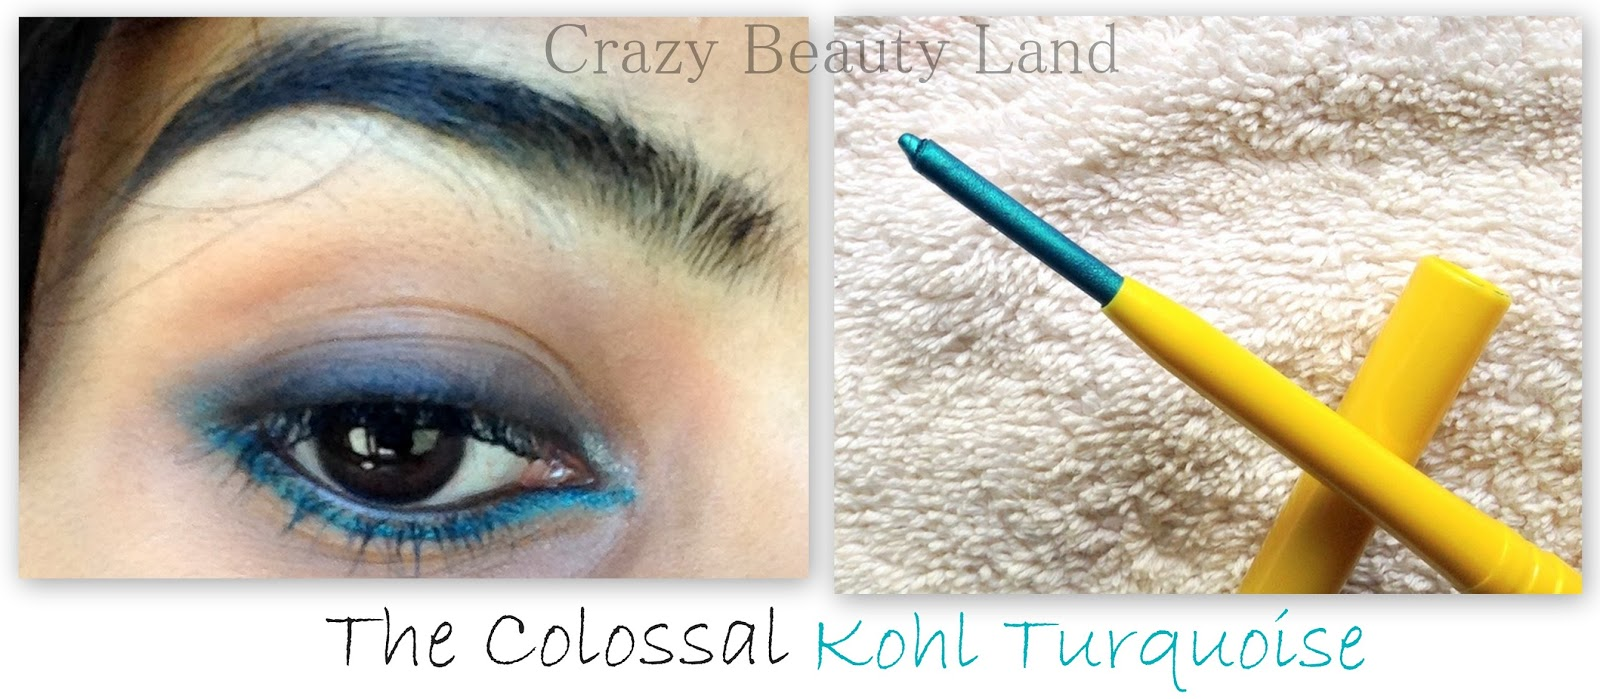 Maybelline Colossal Kohl Turquoise  Review EOTD